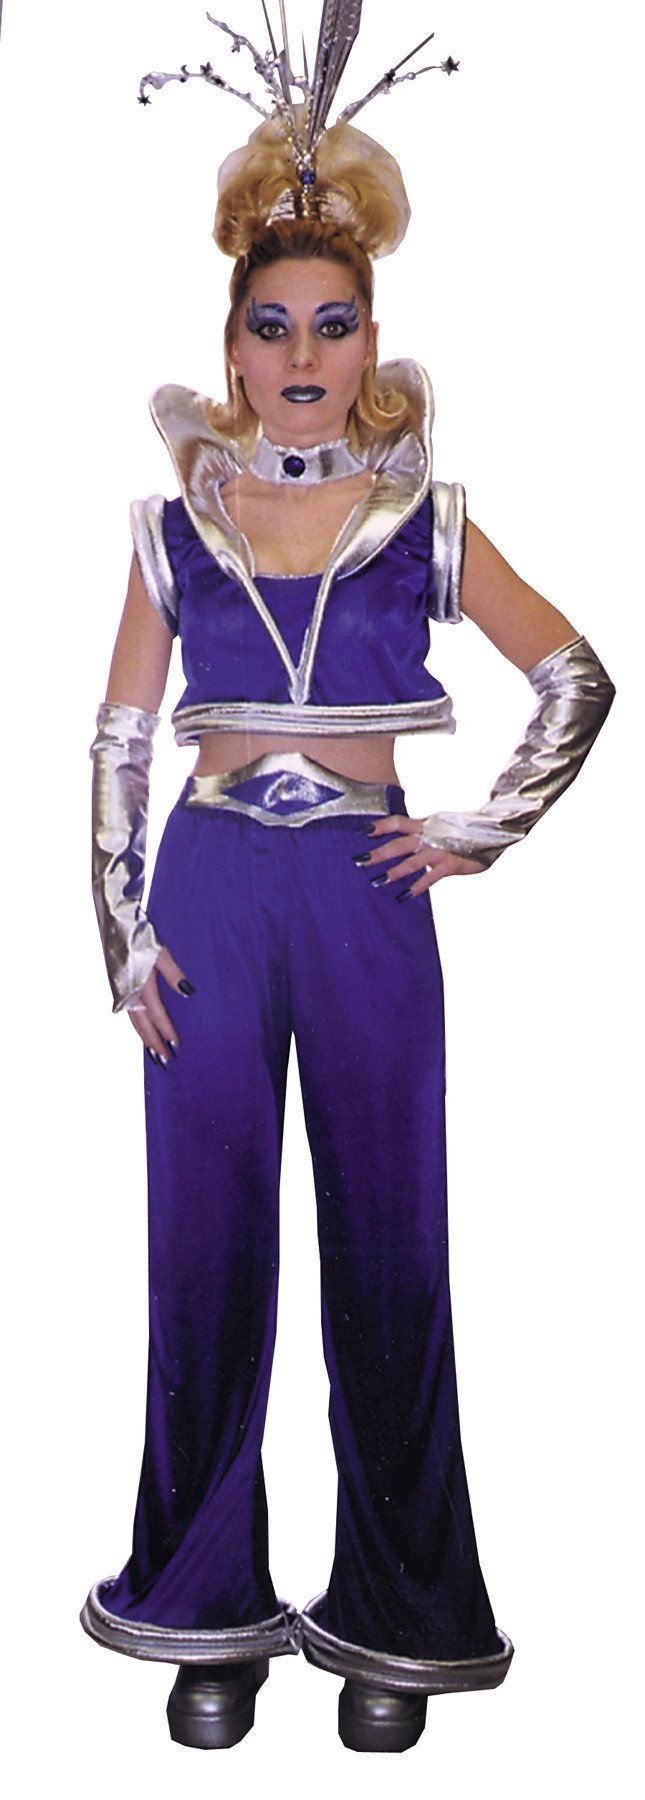 Best 25+ Space party costumes ideas only on Pinterest | Jet packs ...